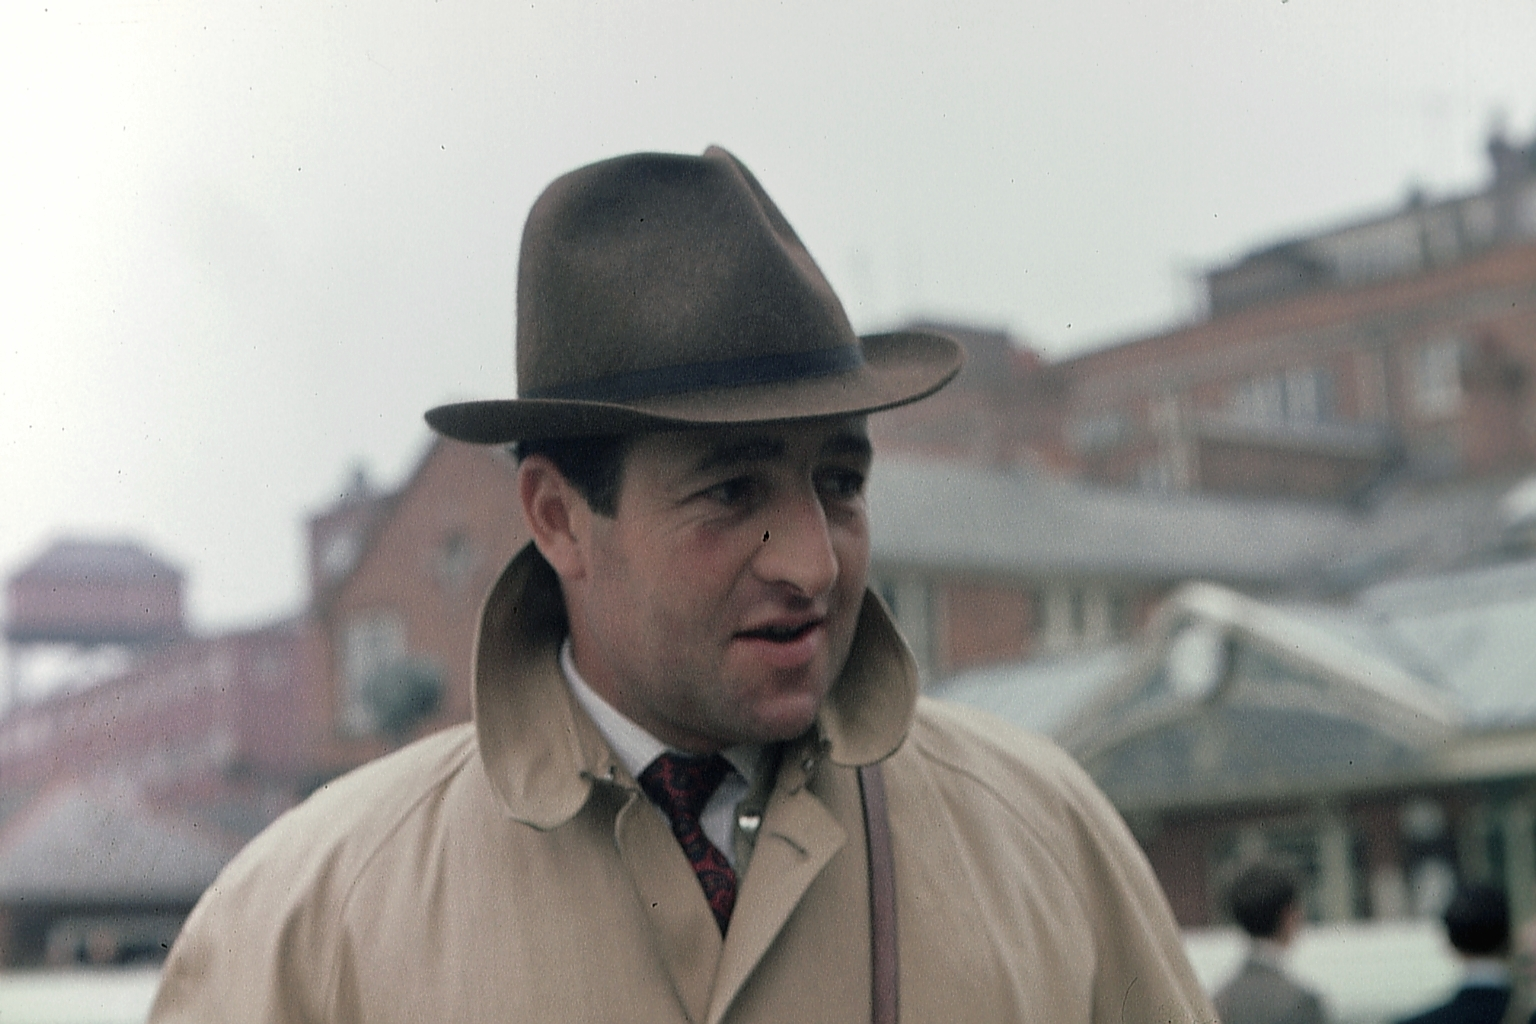 Dick Hern (20th January 1921 - 22nd May 2002) - Famous UK Race Horse Trainer,  picture circa 1969. horse racing collectables